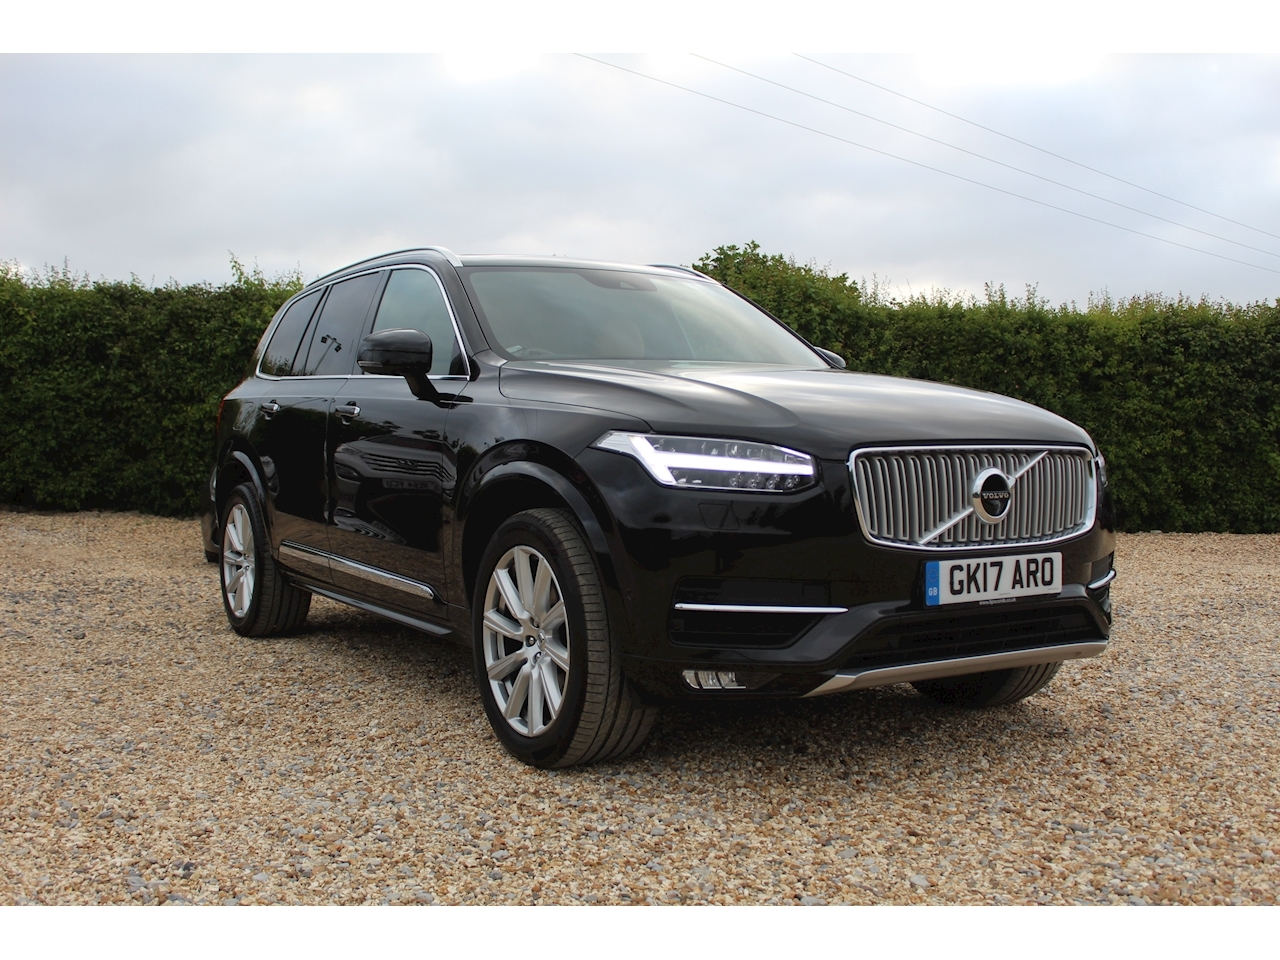 Xc90 D5 Powerpulse Inscription Awd Estate 2.0 Automatic Diesel